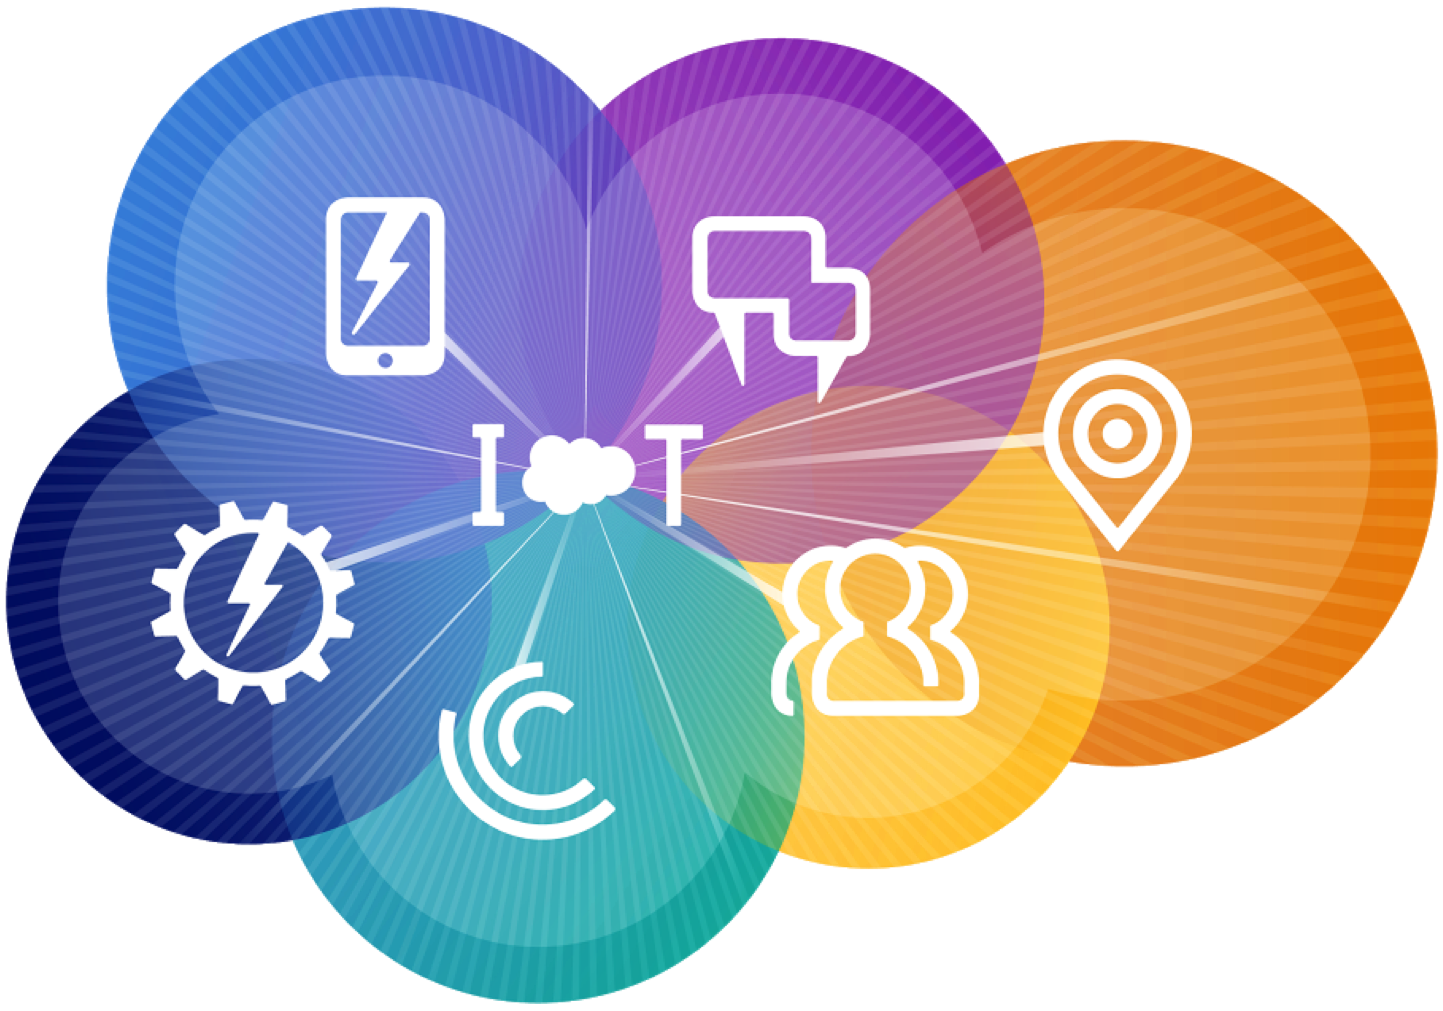 Salesforce IoT Cloud: Connecting the Internet of Things to Your Customers - Salesforce Blog